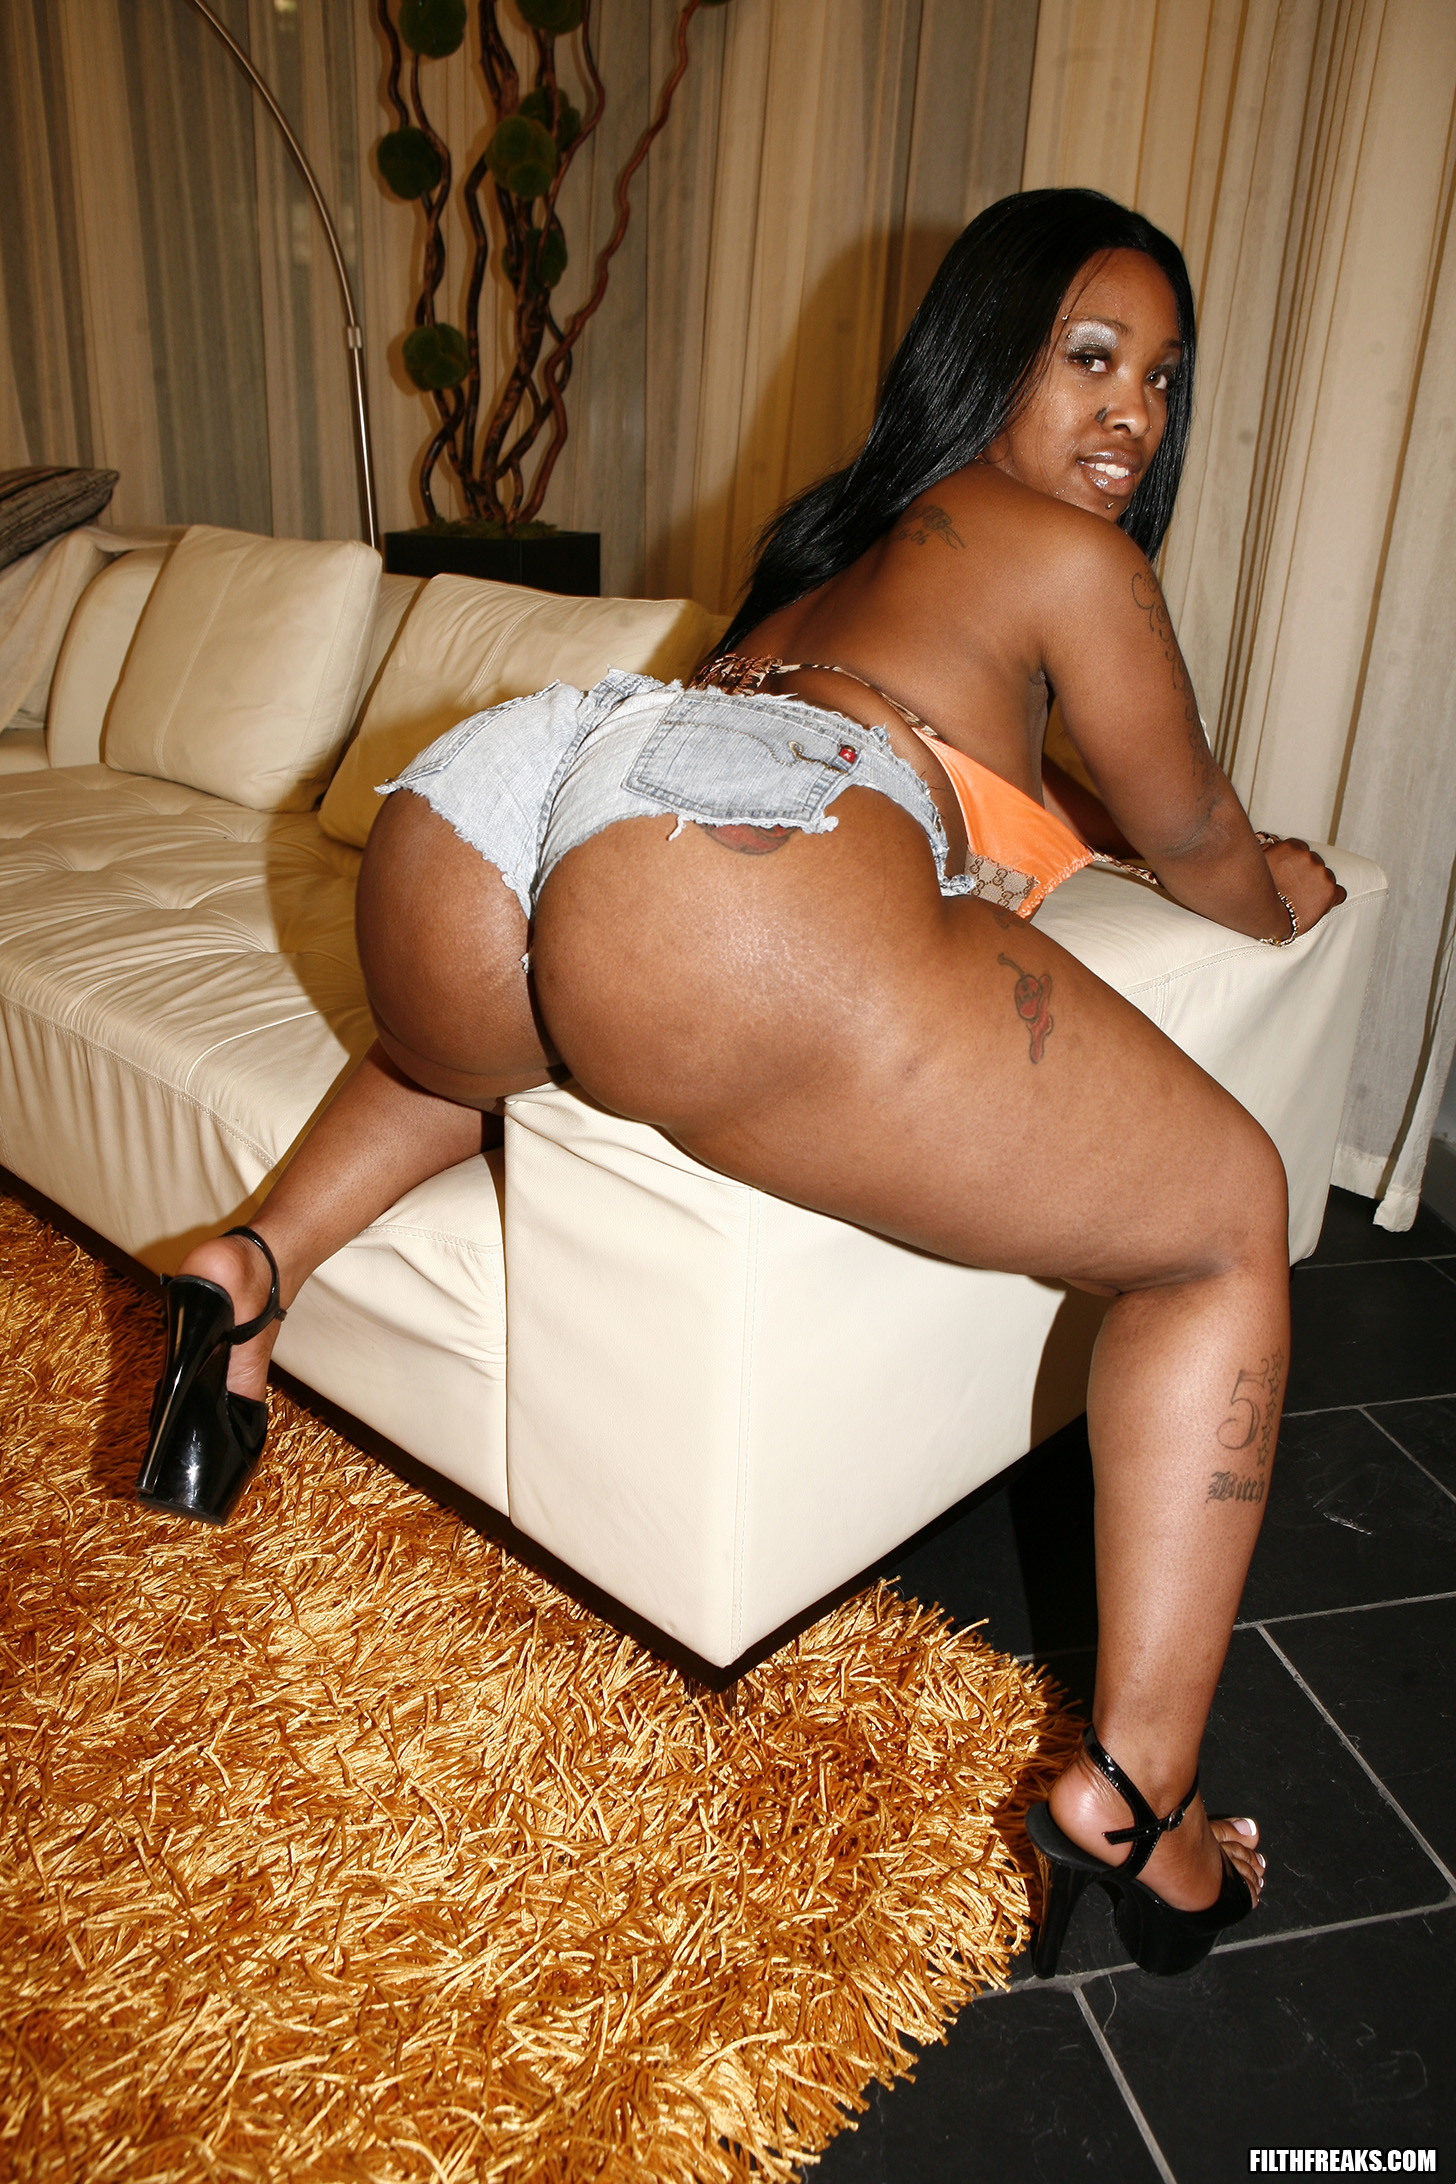 free porn samples of filth freaks - big booty fat thick women